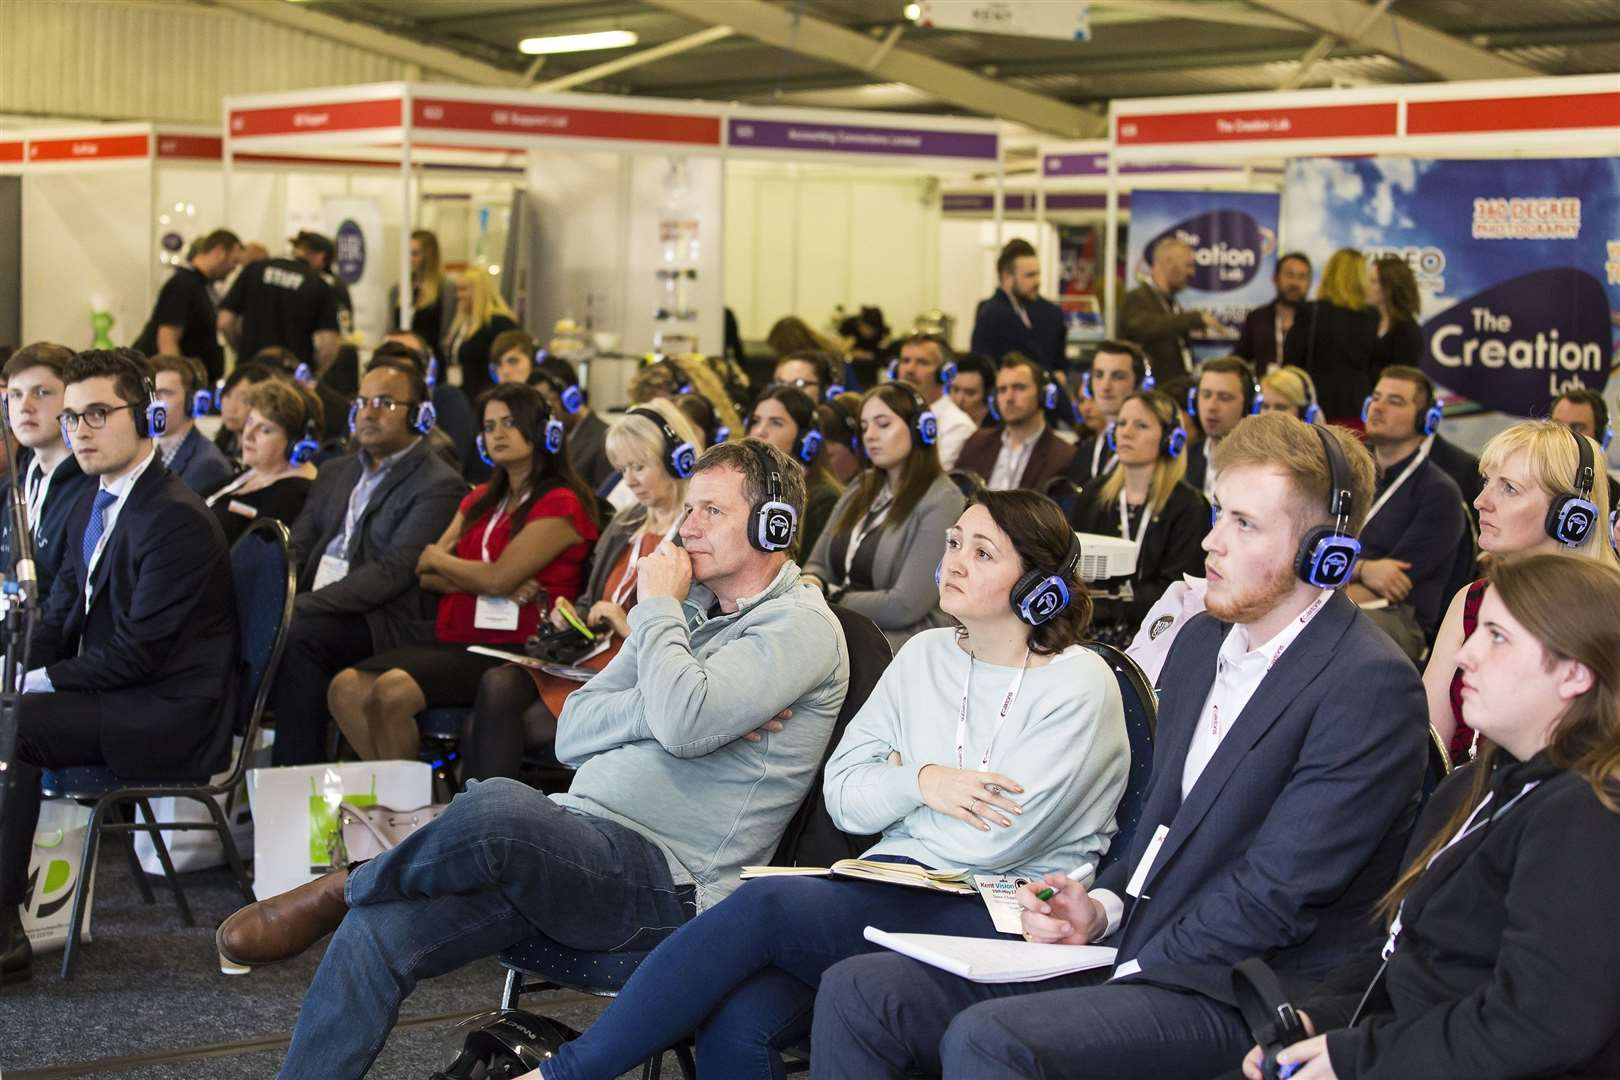 Audience listen keenly to a panel debate at a previous Business Vision event